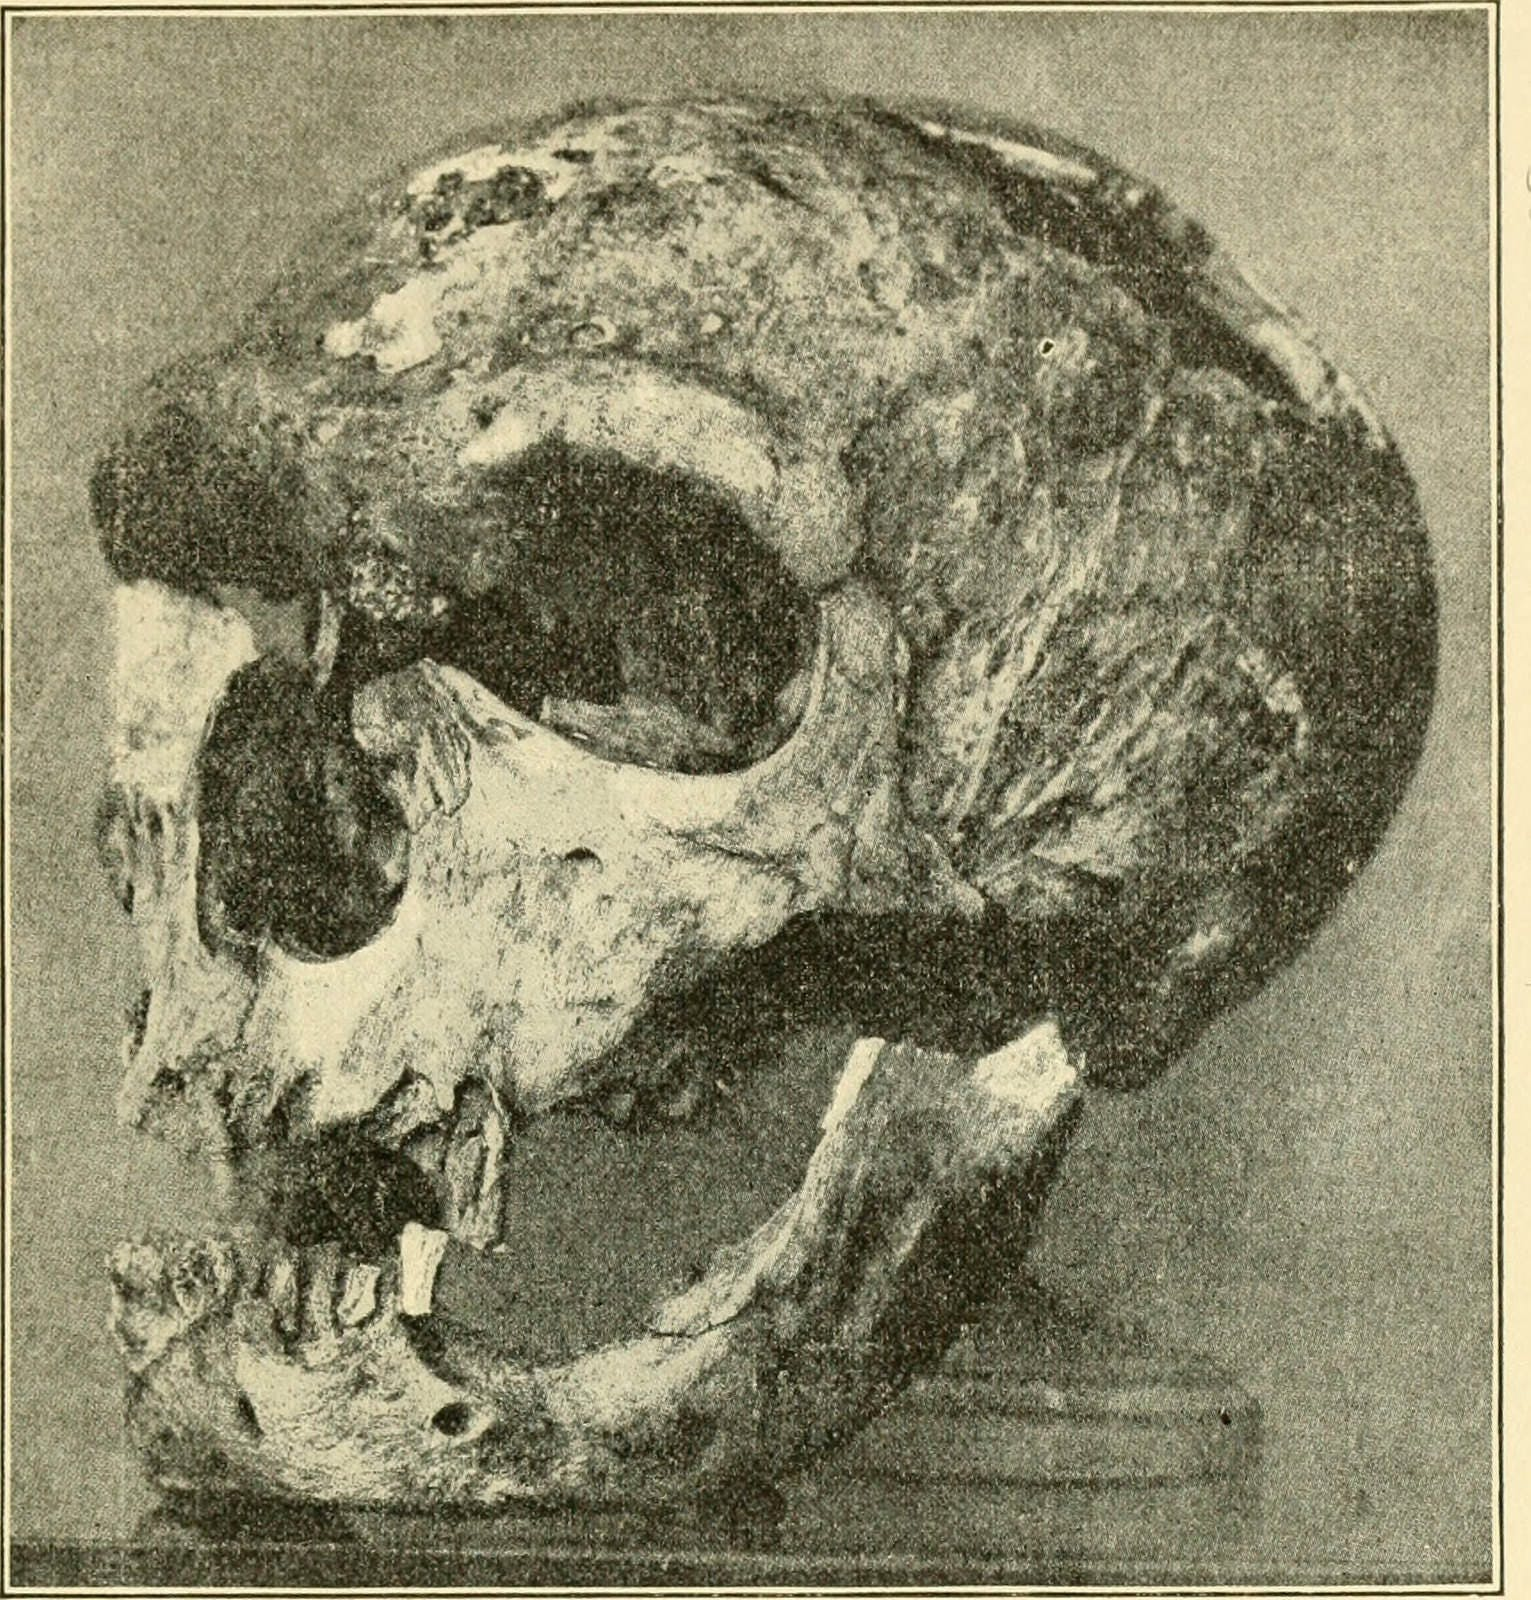 Skull of a Neandertal man.